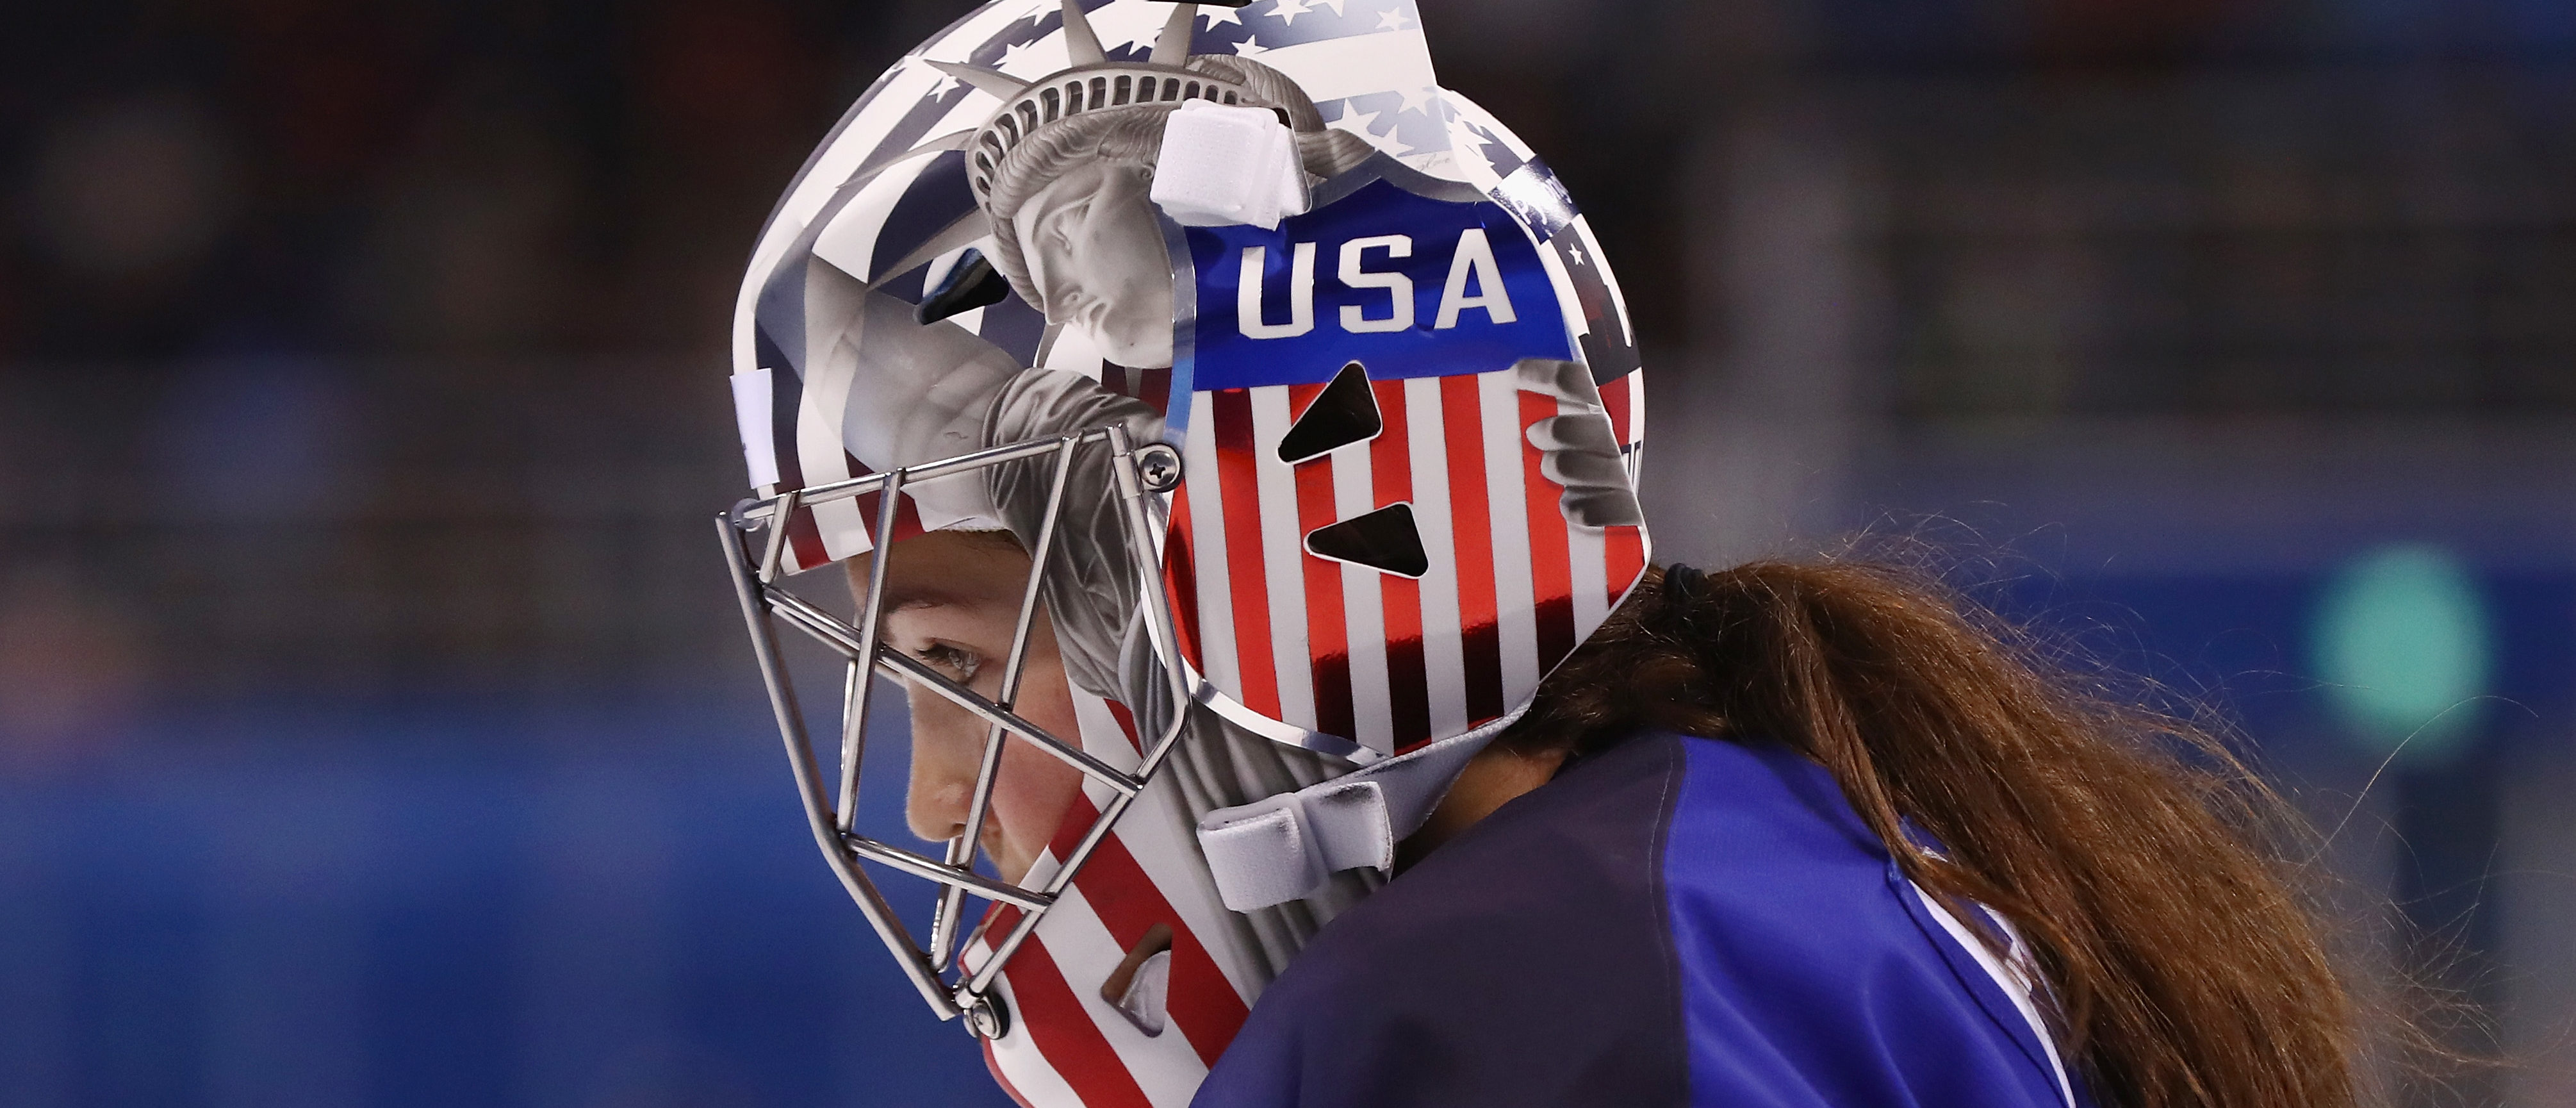 After Ridiculous Debate Ioc Rules Usa Goalie Helmets Are Acceptable